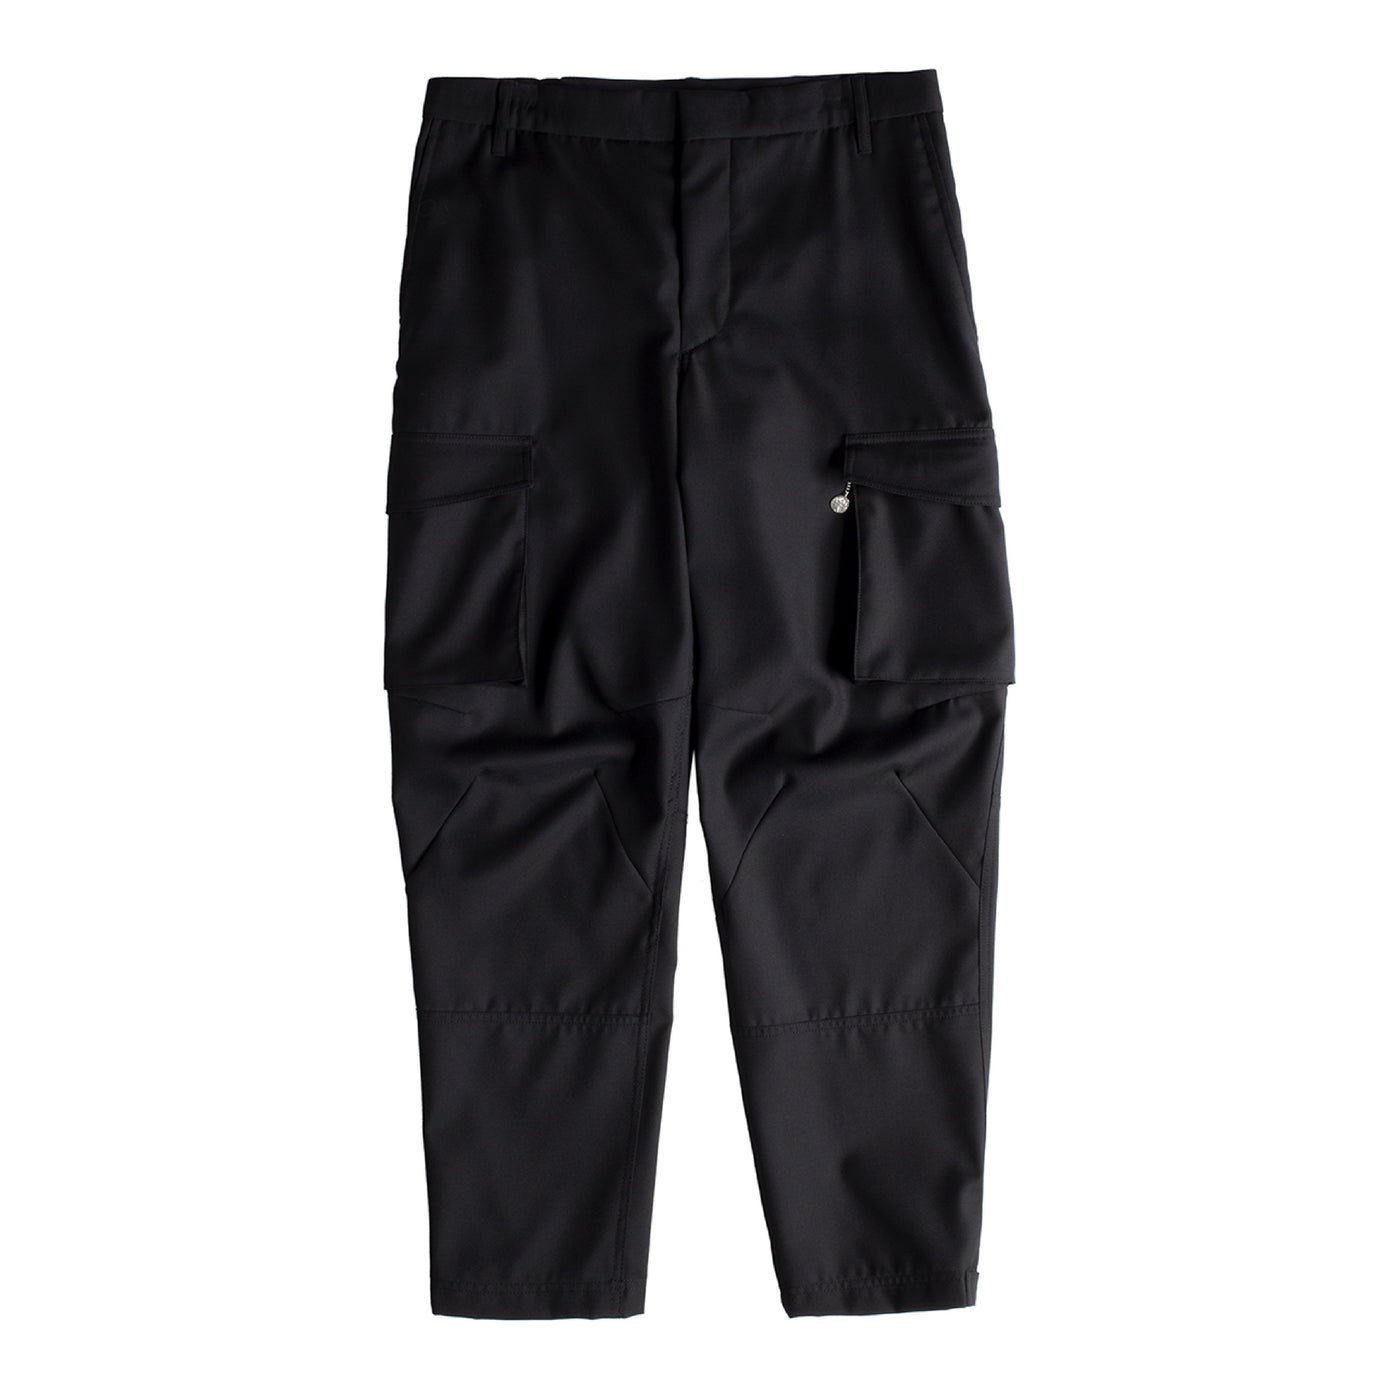 Load image into Gallery viewer, GIVENCHY CARGO TROUSERS BLACK